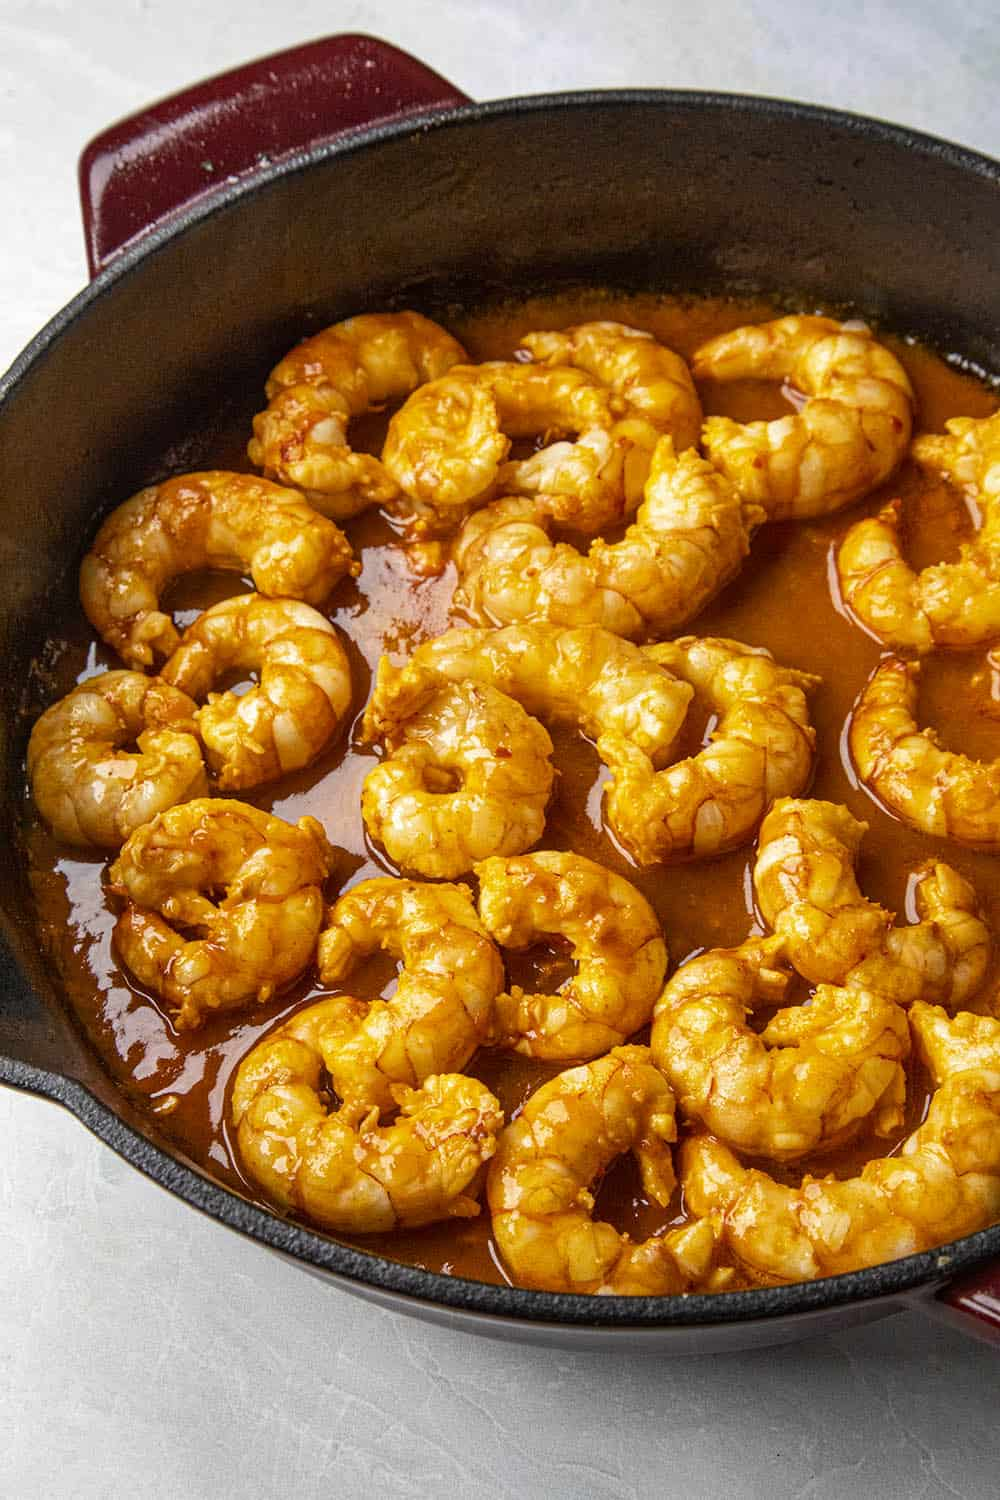 Cooking the shrimp in the pan